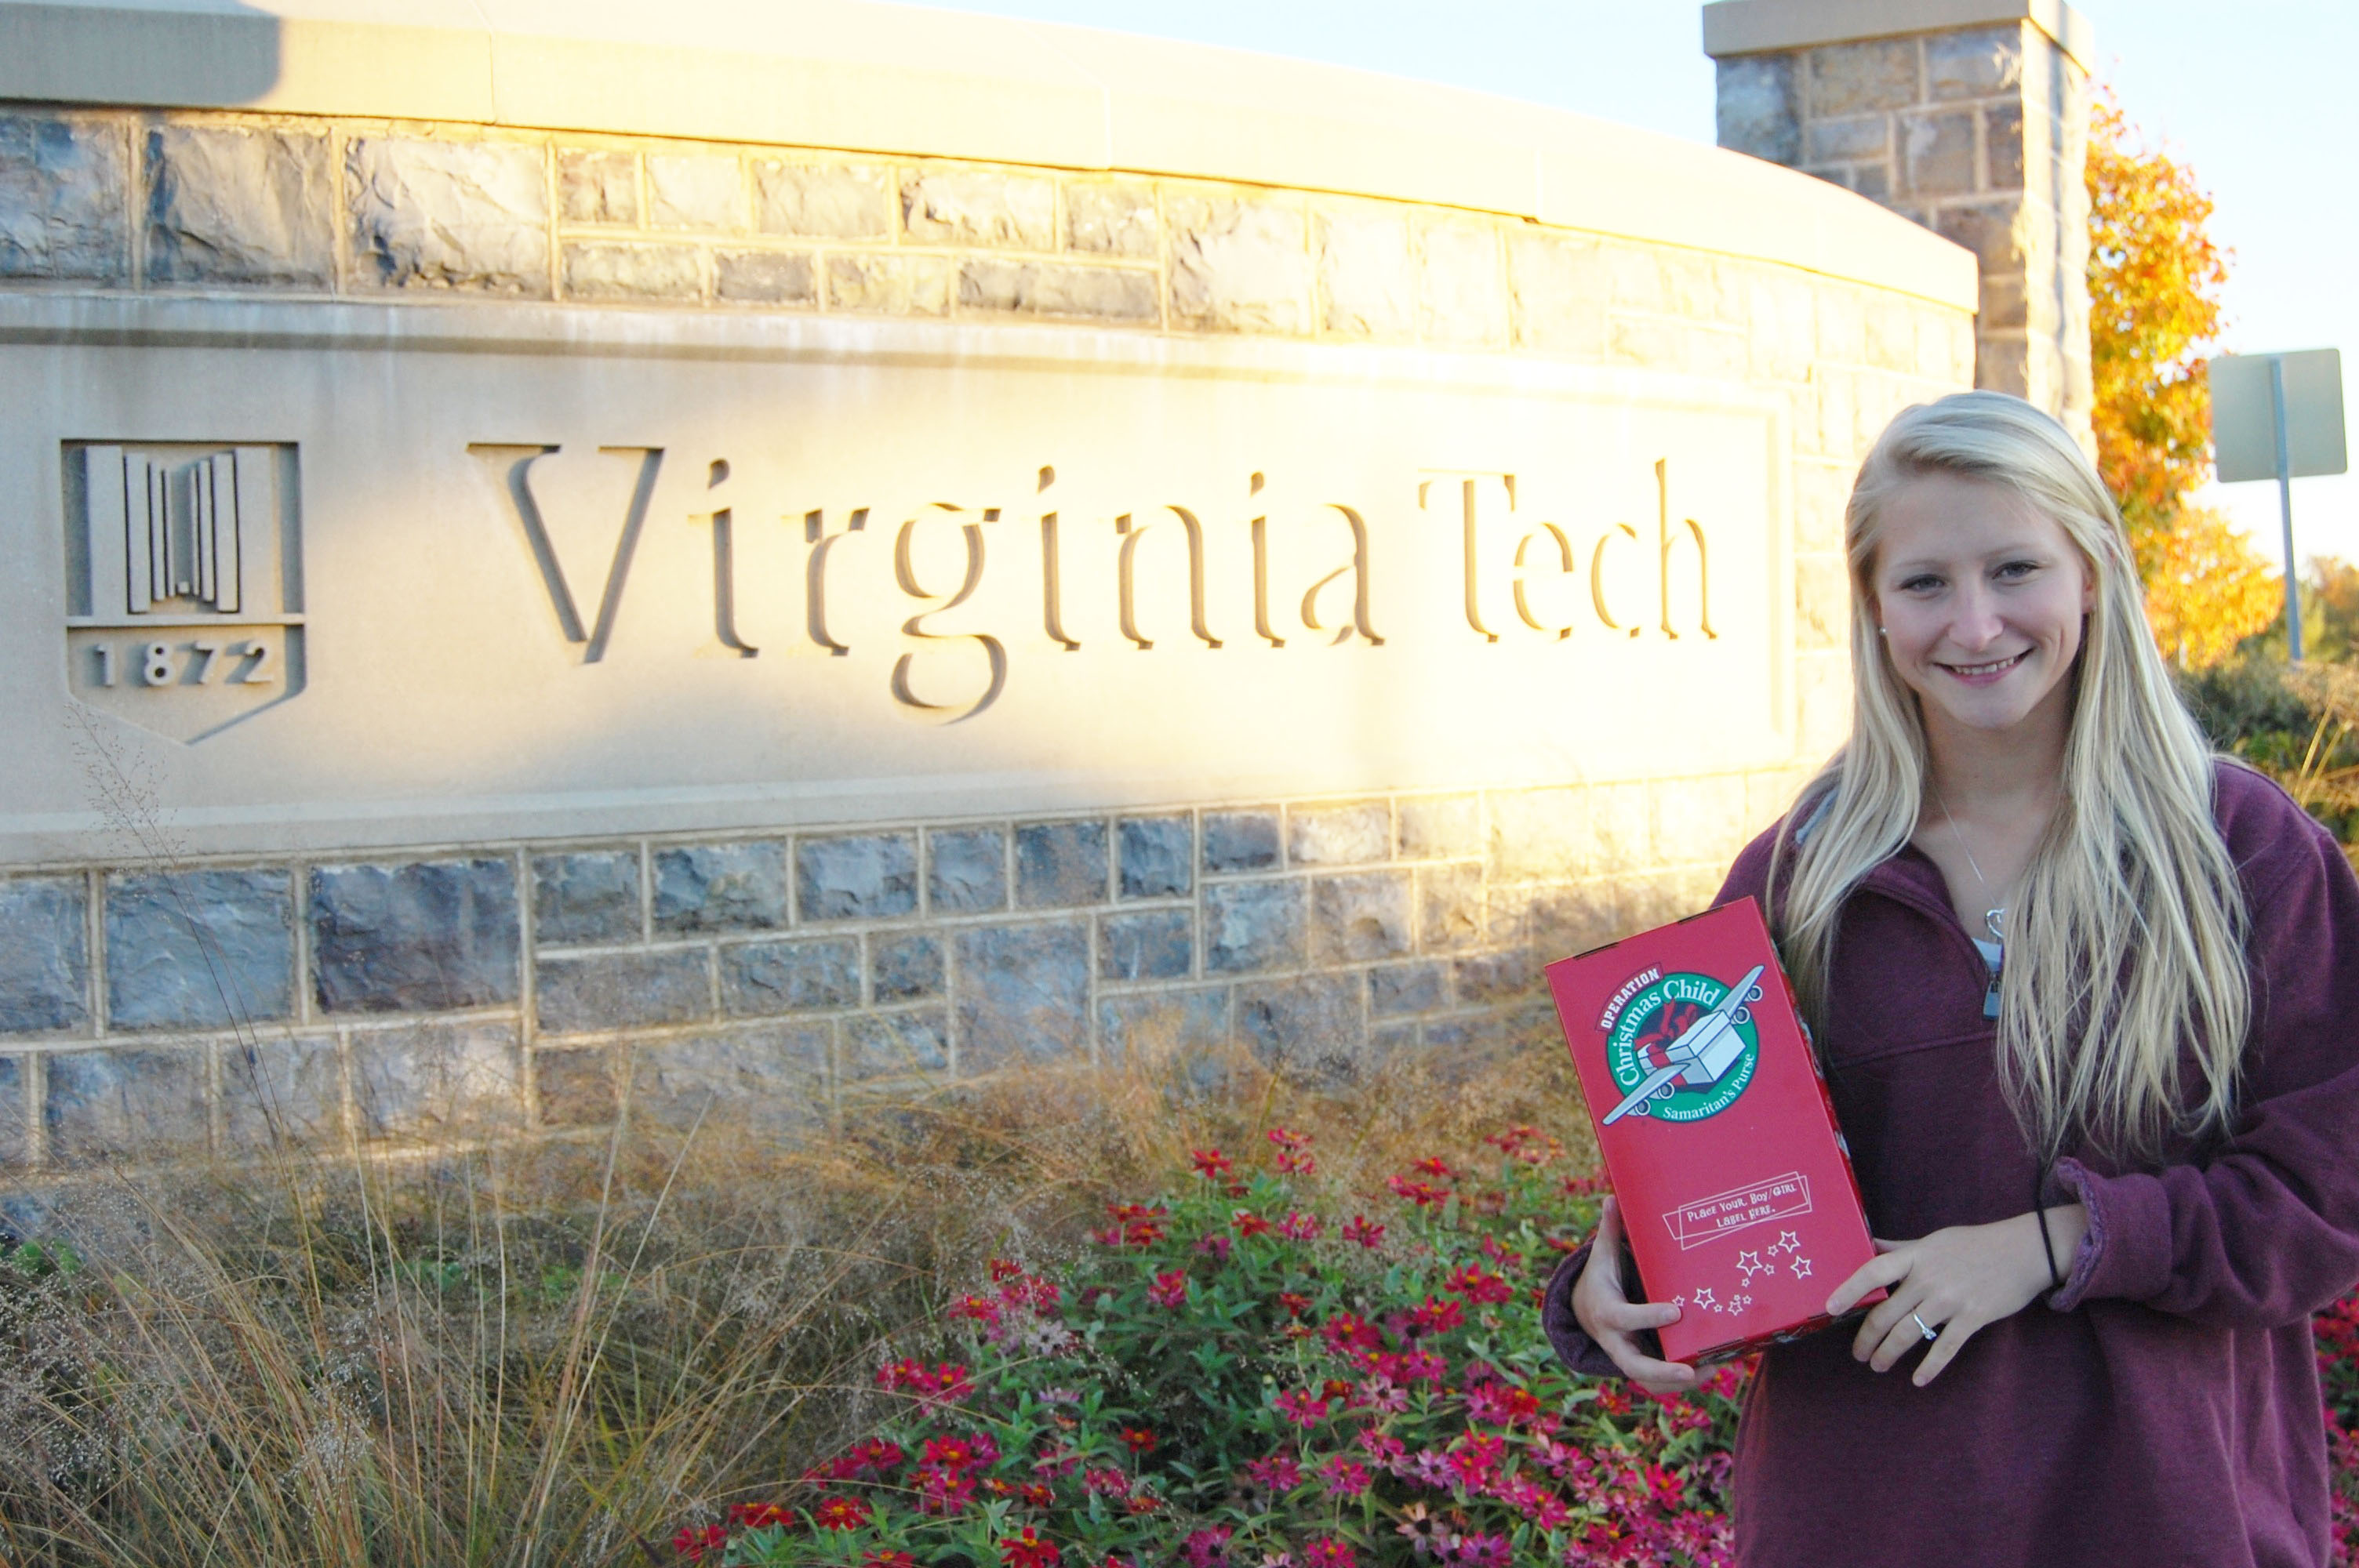 Student stands in front of Virginia Tech entrance sign